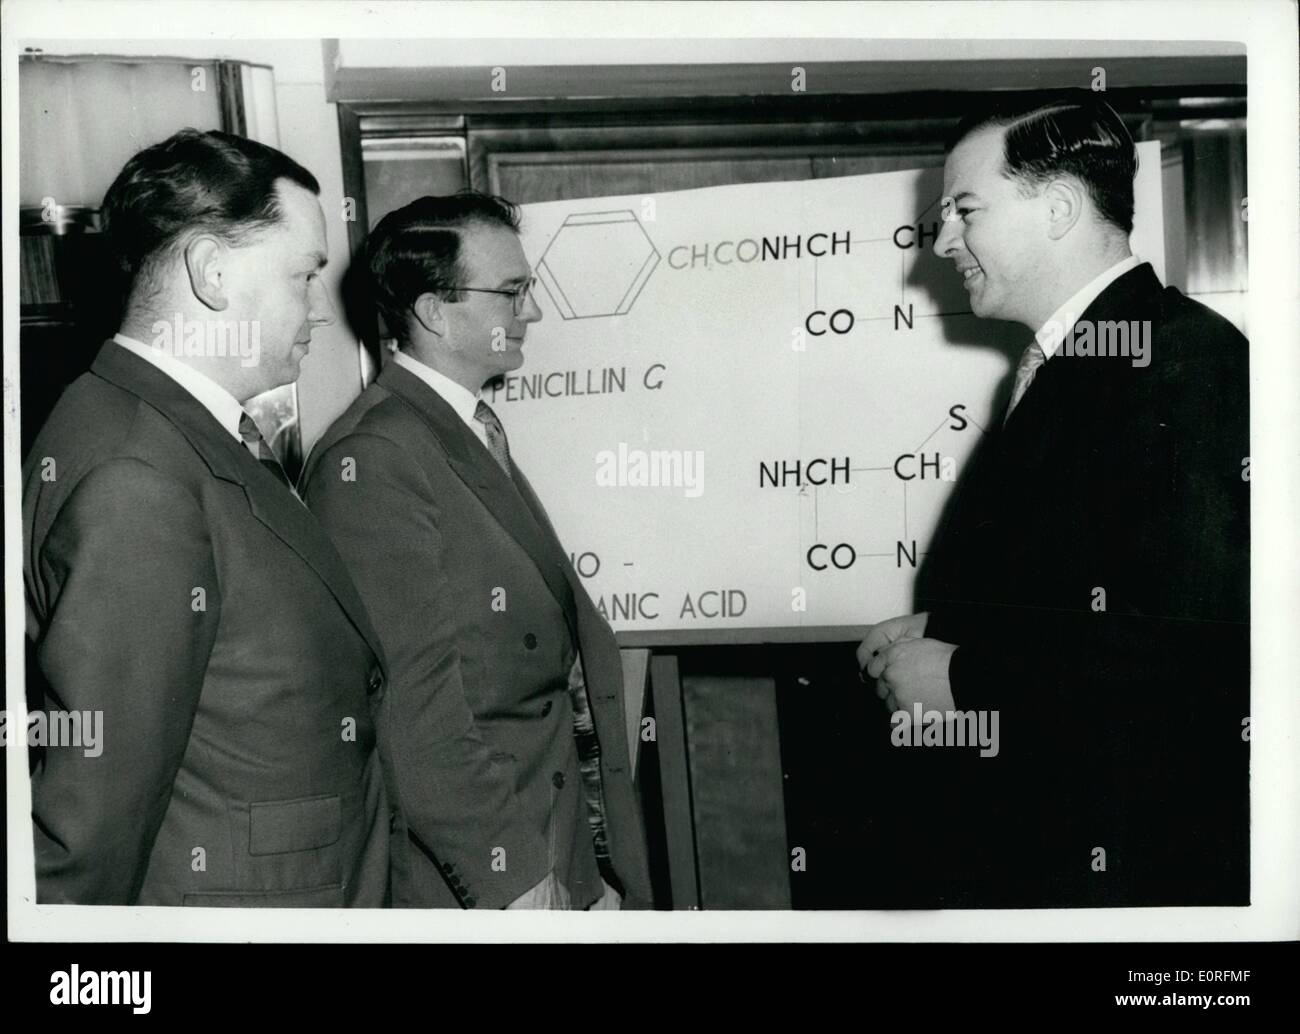 Jun. 06, 1959 - British Research Workers Discover New Type of Penicillin Substance - Members of the Beecham Research Laboratories Research Team - were to be seen at the Savoy Hotel this afternoon- when a statement was made on the substance which they have sicovered from which new types of pendillin can be produced that may overcome ''resistant'' germs and cause no ill effects in people normally sensitive to penicillin. It is said to be the most Importent ''Break through'' Since Fleming's discovery in 1929 - Stock Image